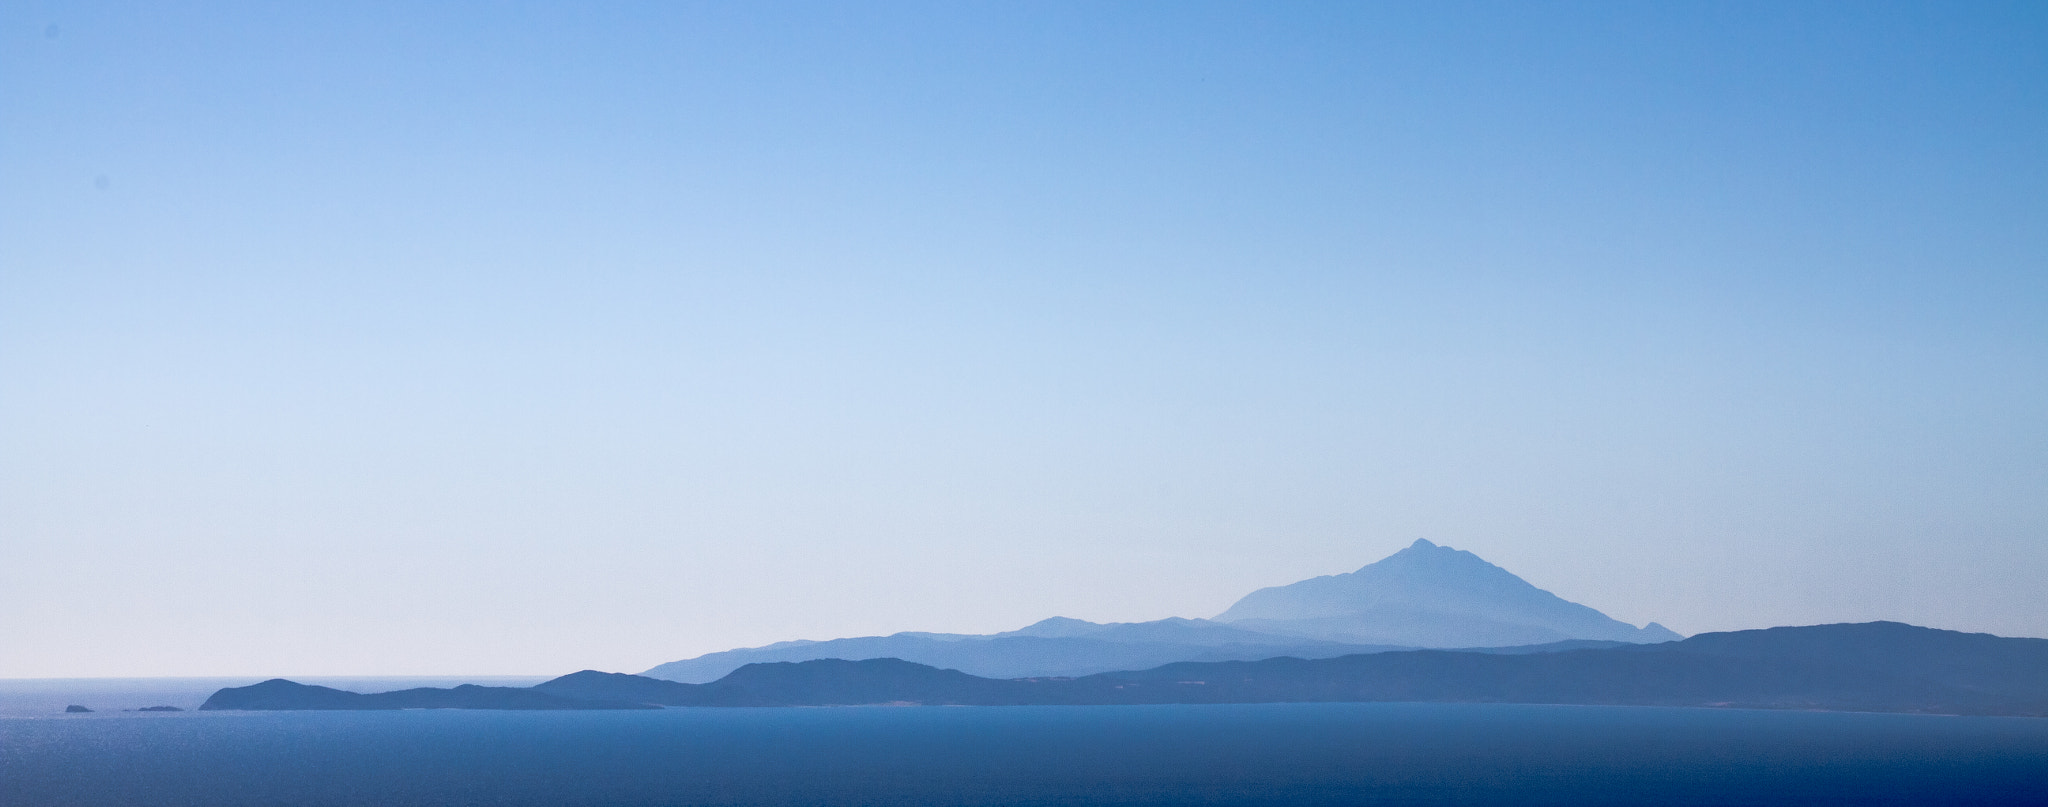 Photograph Mt. Athos at sea by Ryan Opaz on 500px